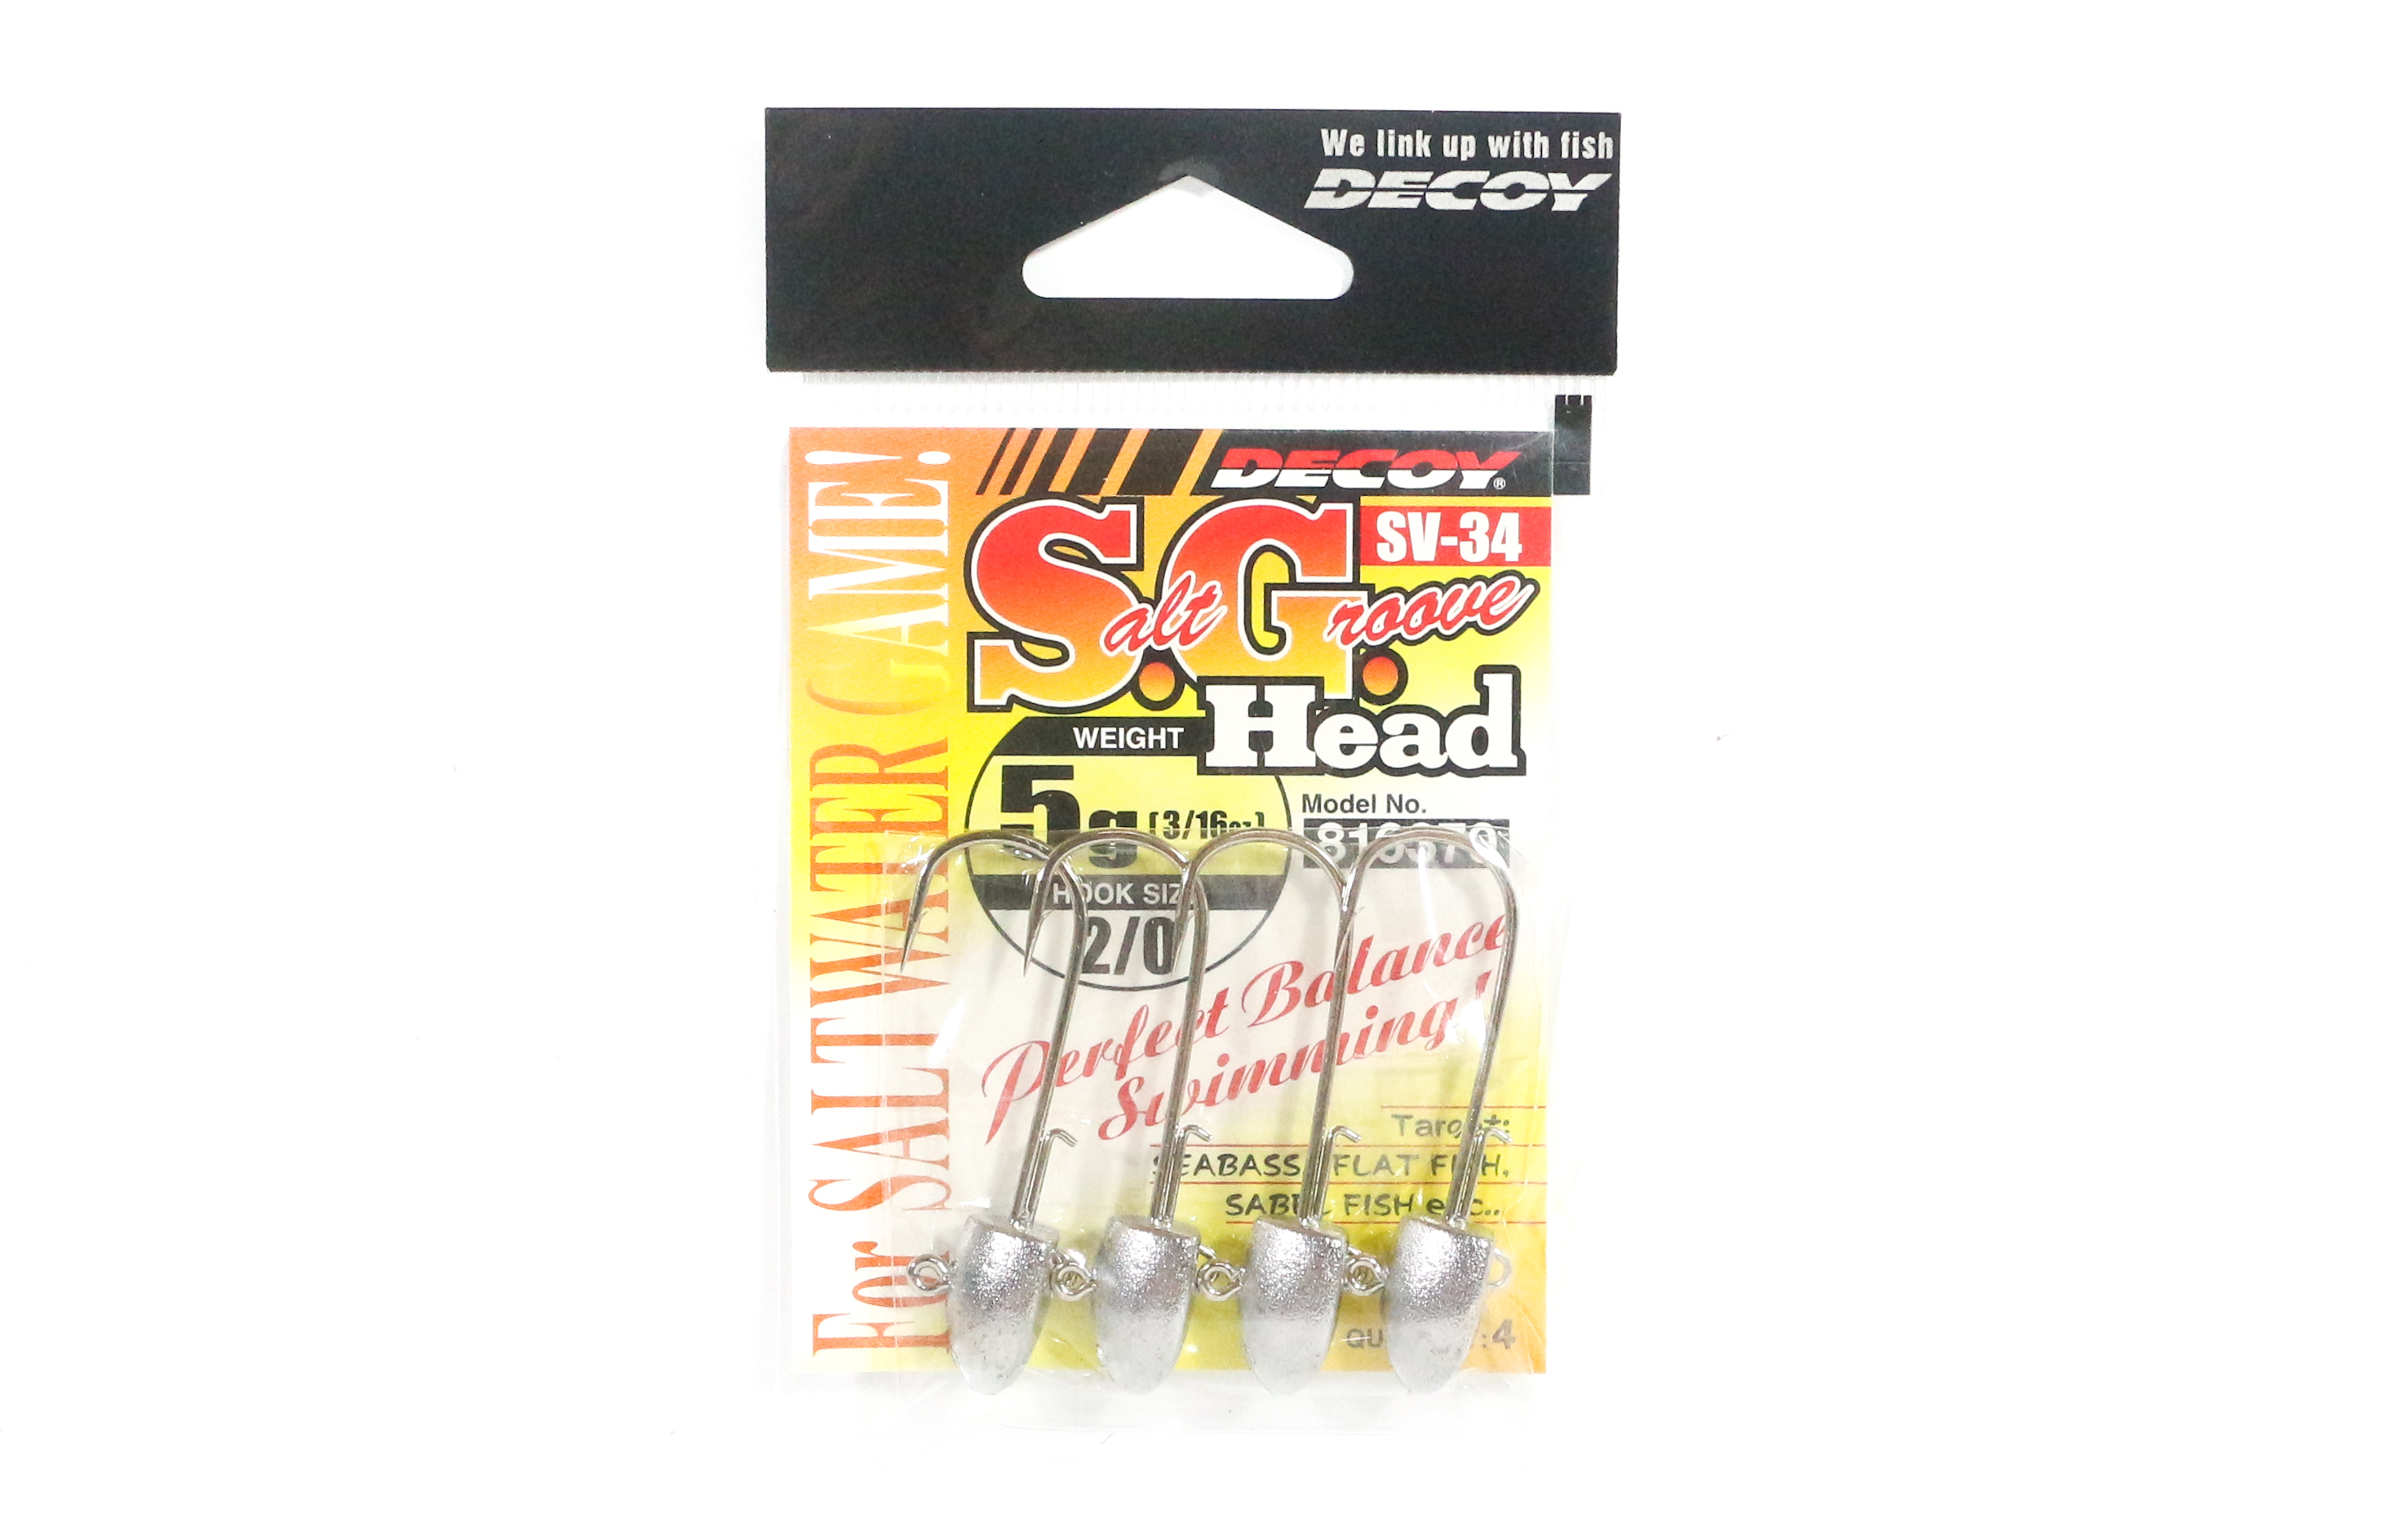 Decoy SV-34 Jig Head Salt Groove S.G Head Size 2/0 , 5 grams (6370)